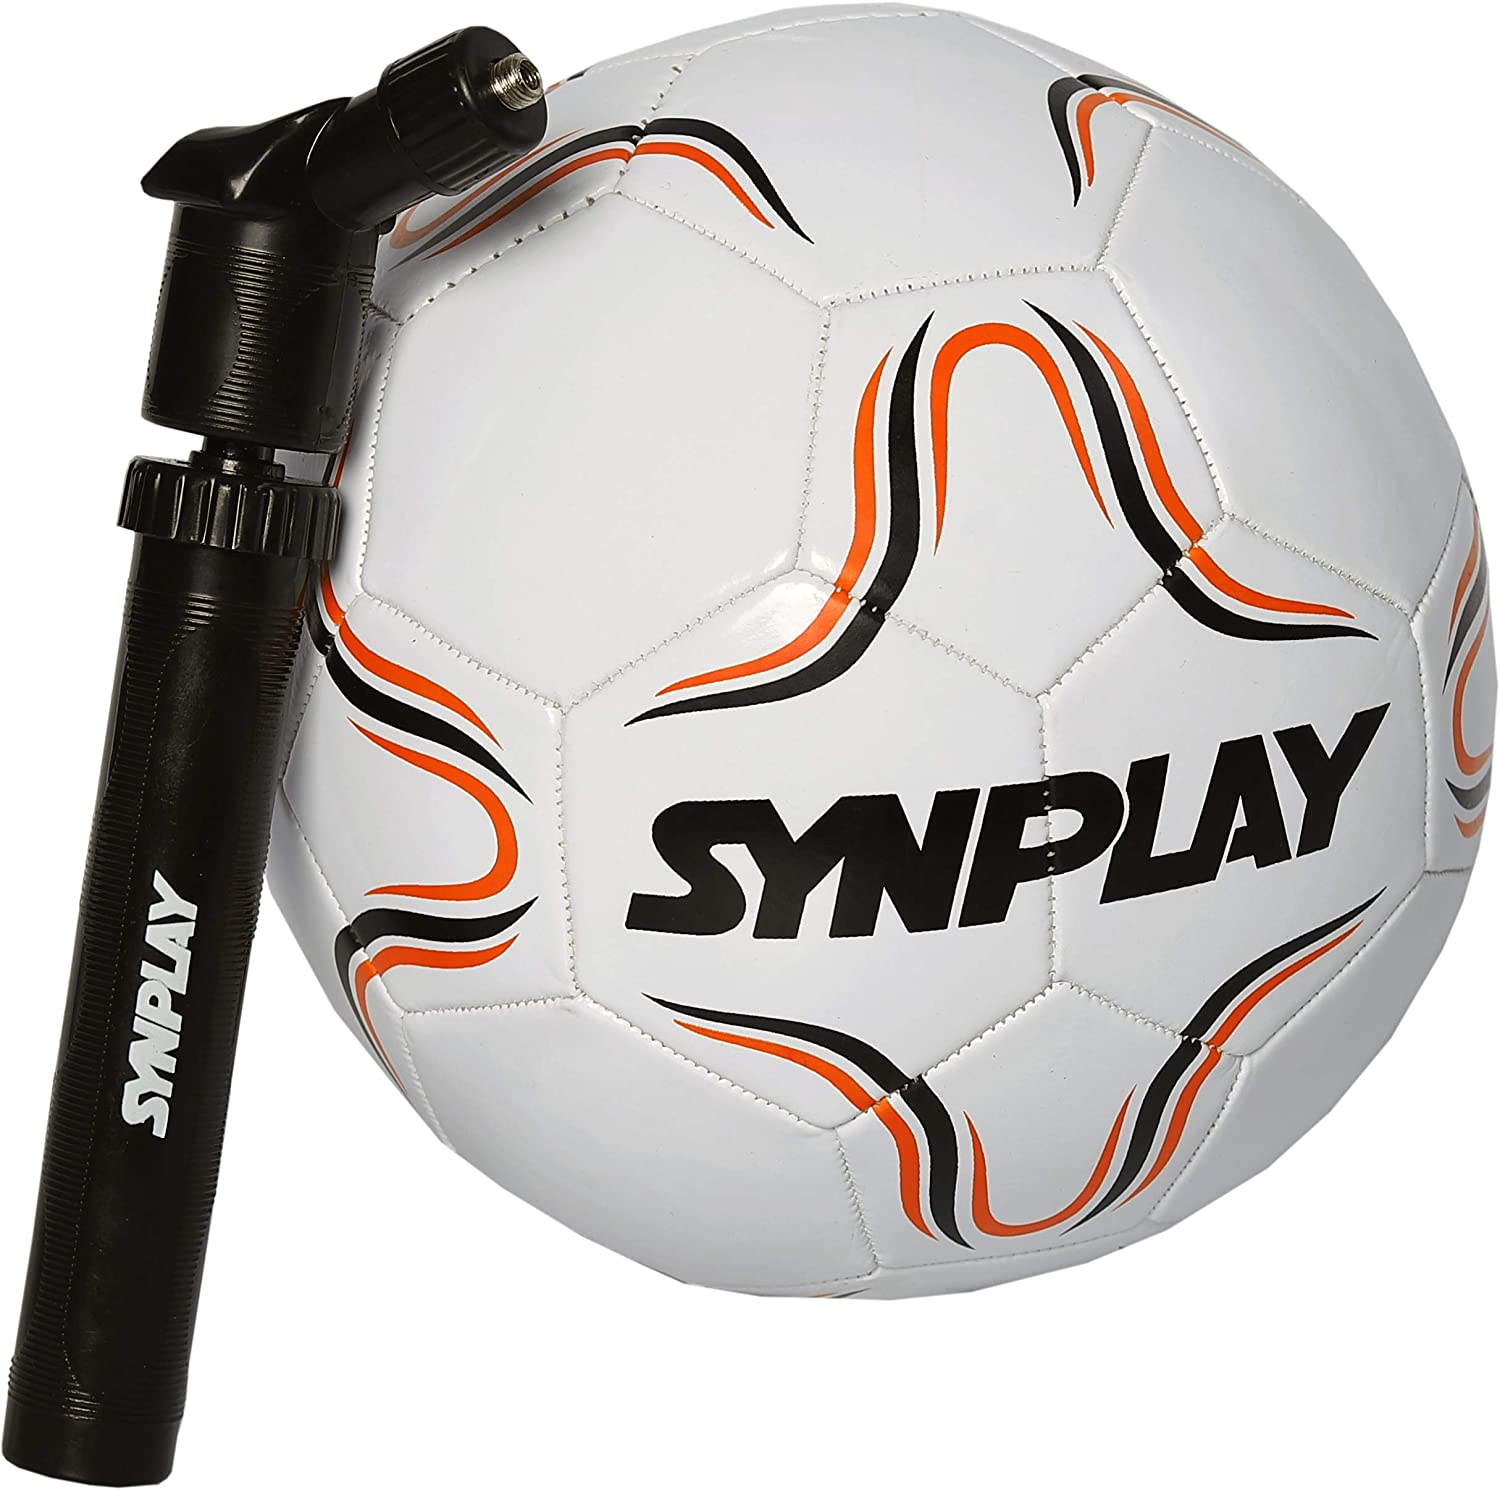 "SYNPLAY Machine Stitched Mini Foot Ball with Pump, Size 1, Pump 6"" (White)"